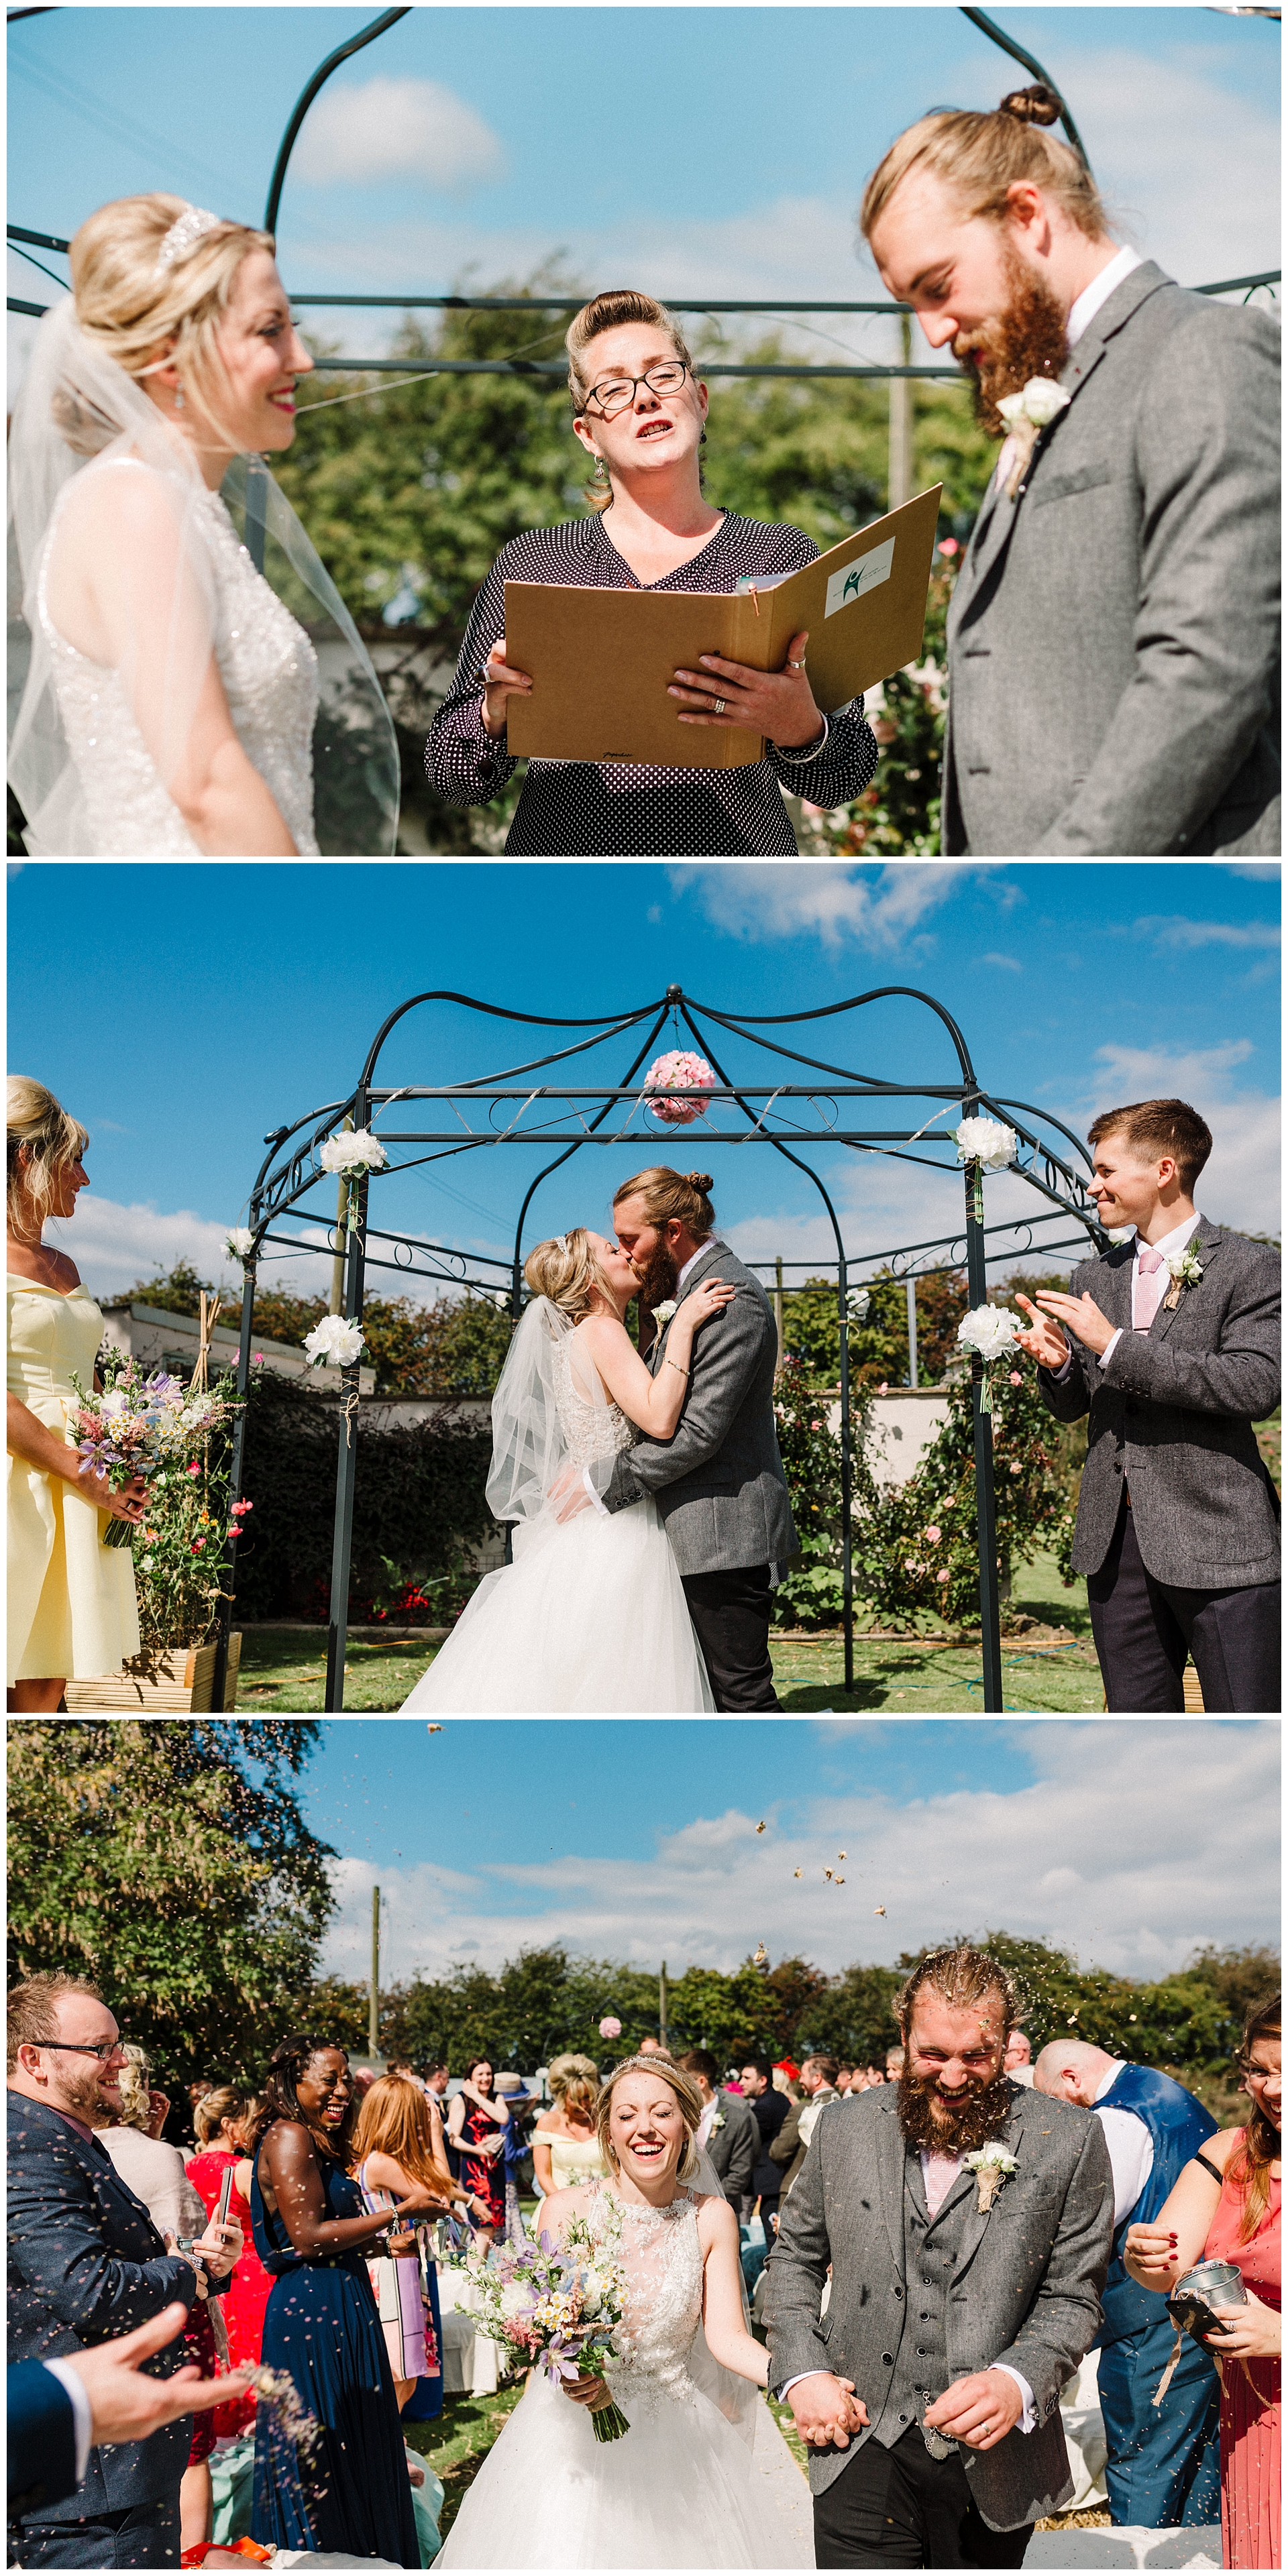 a bride and groom's first kiss at a garden wedding in leeds